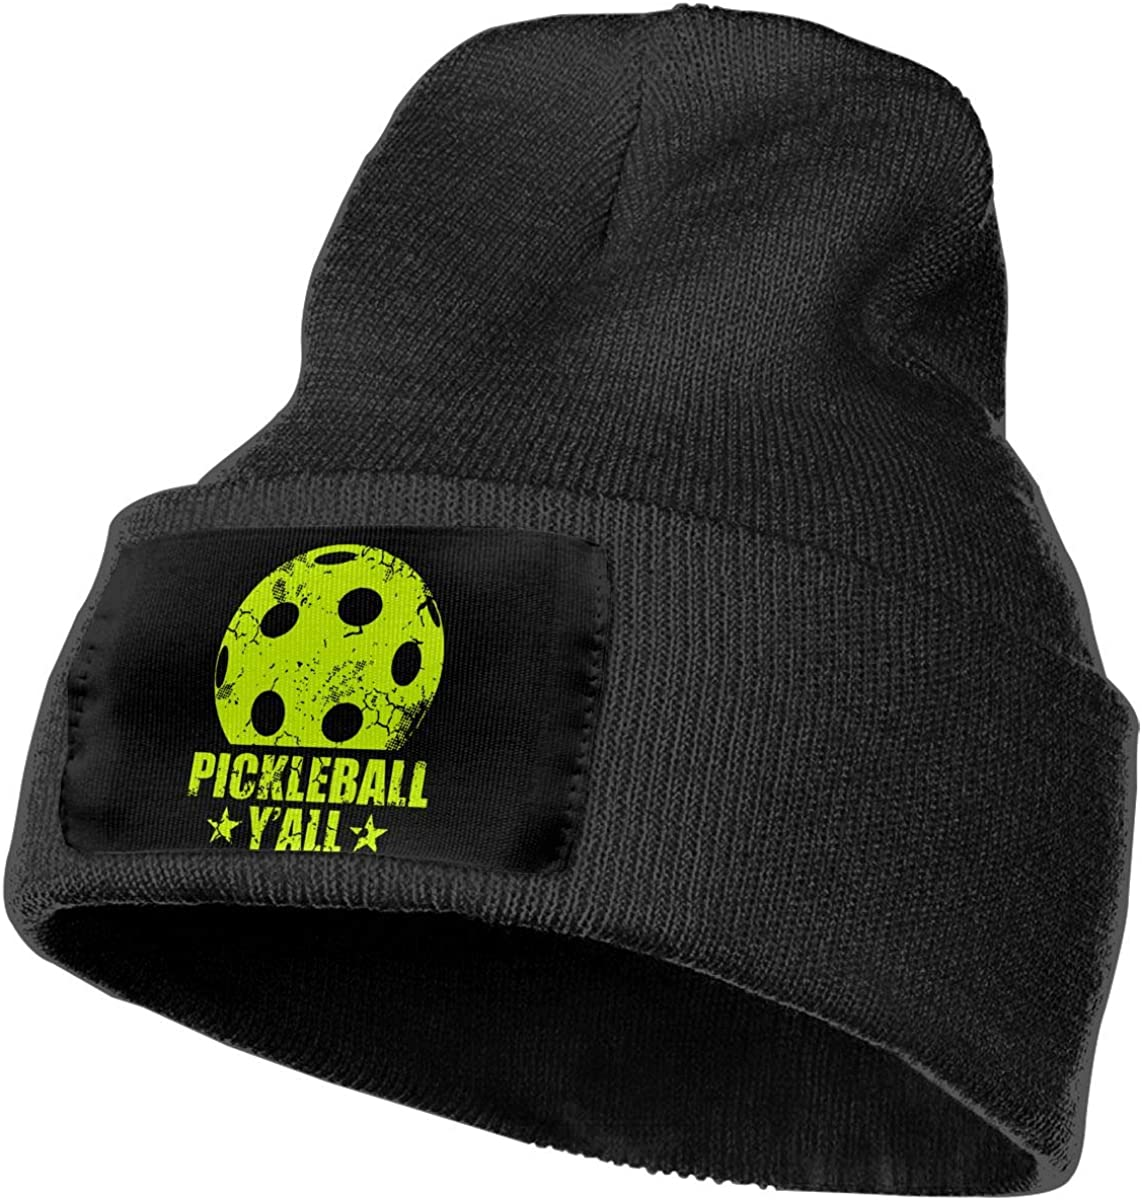 COLLJL-8 Men//Women Pickleball Yall Outdoor Fashion Knit Beanies Hat Soft Winter Knit Caps